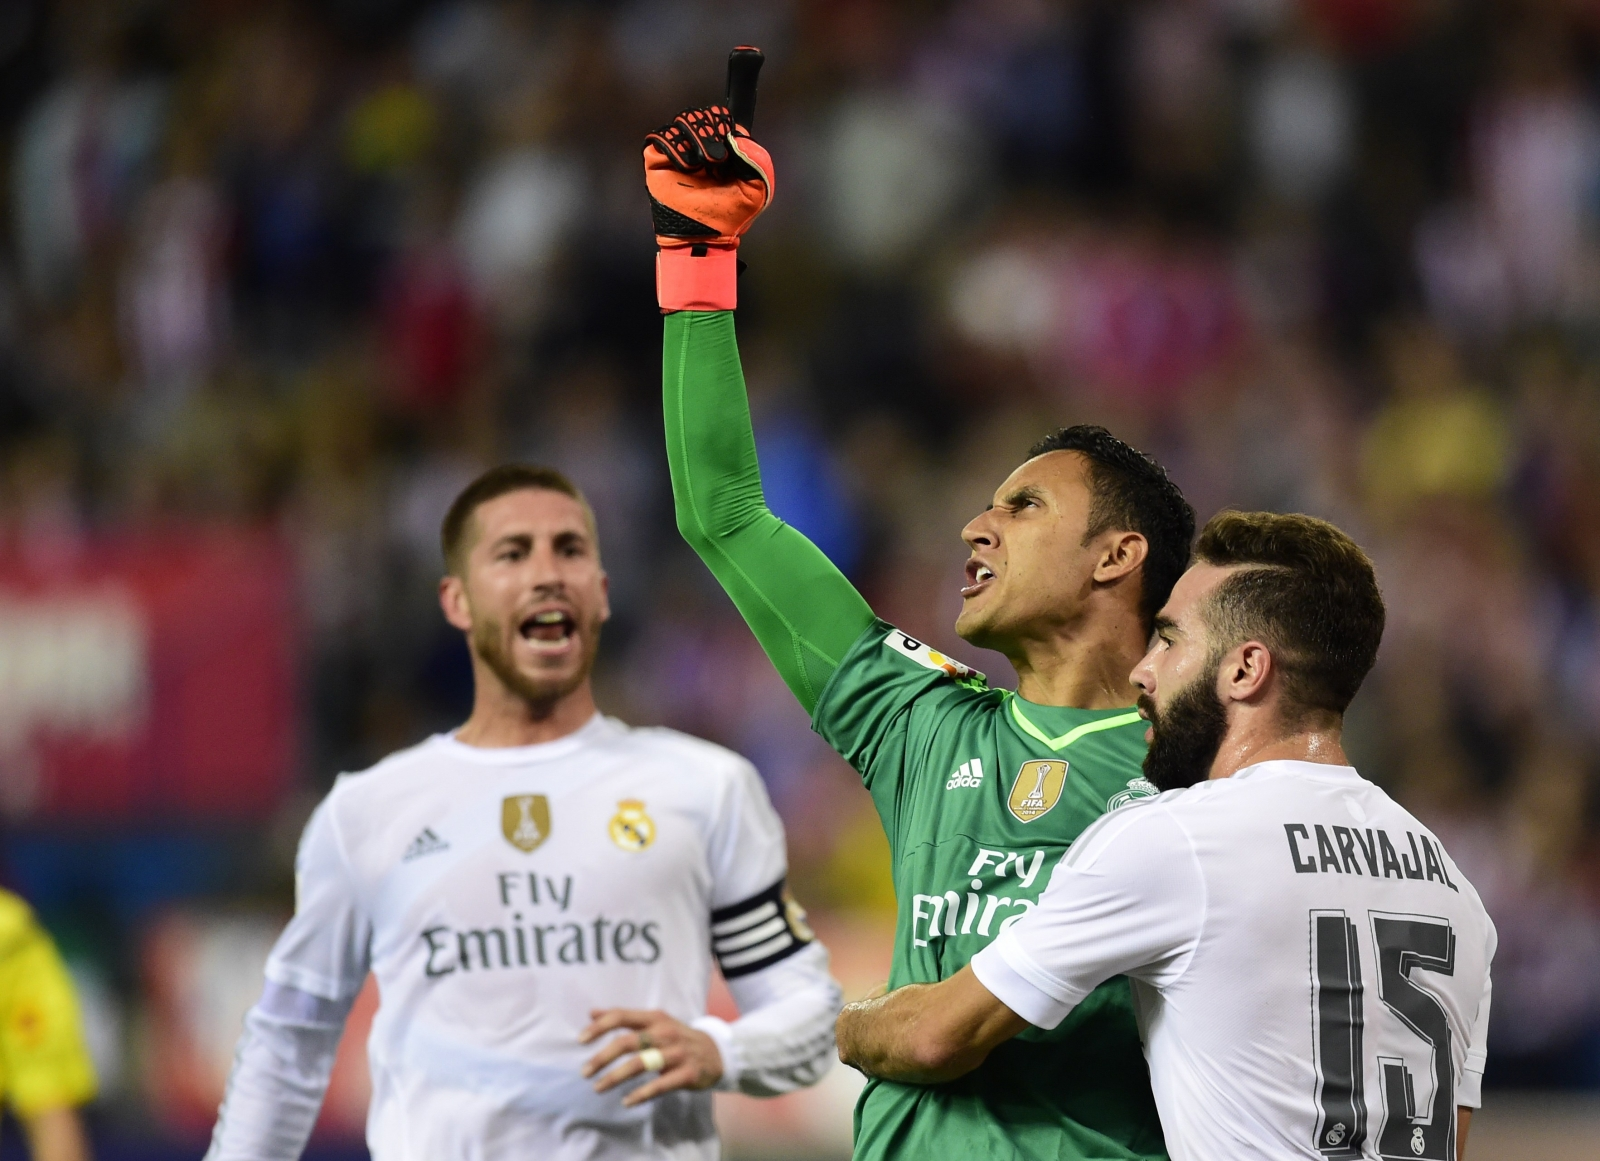 Keylor Navas and Dani Carvajal